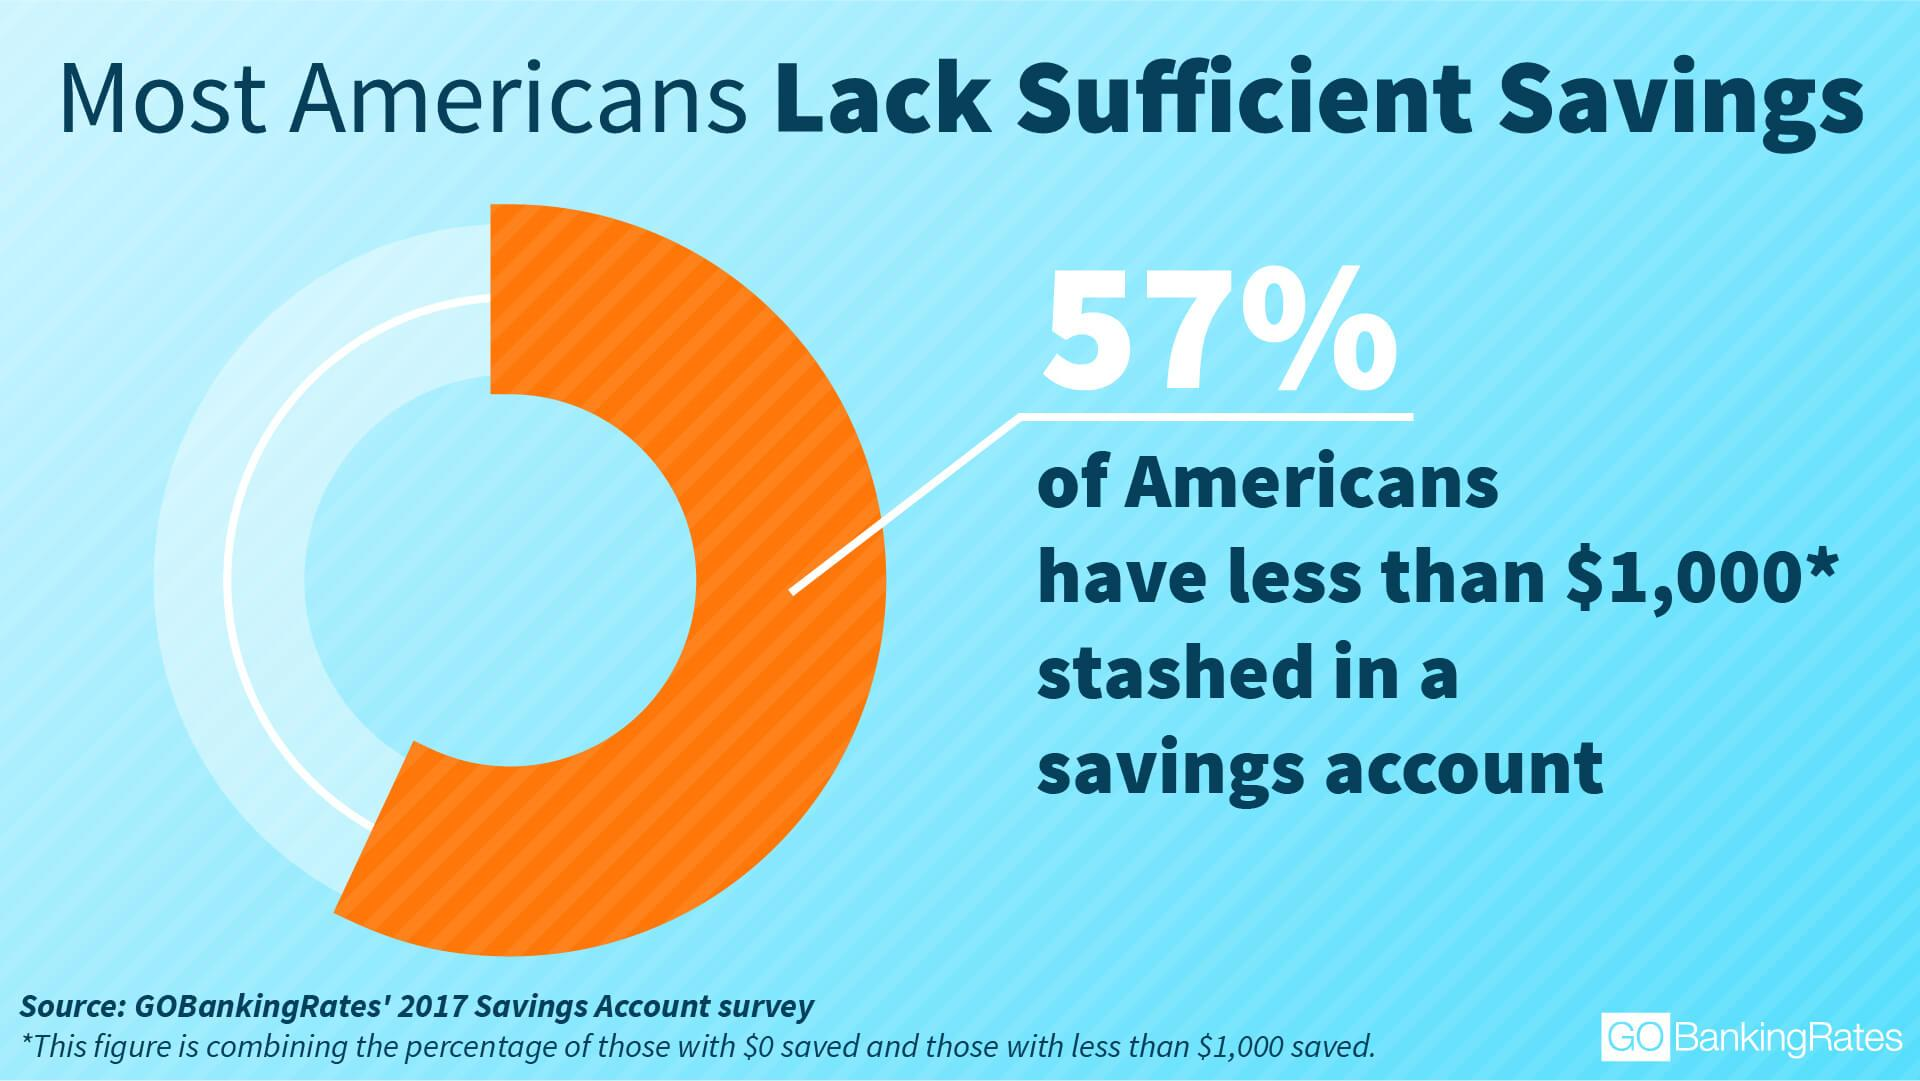 Americans Lack Sufficient Savings infographic